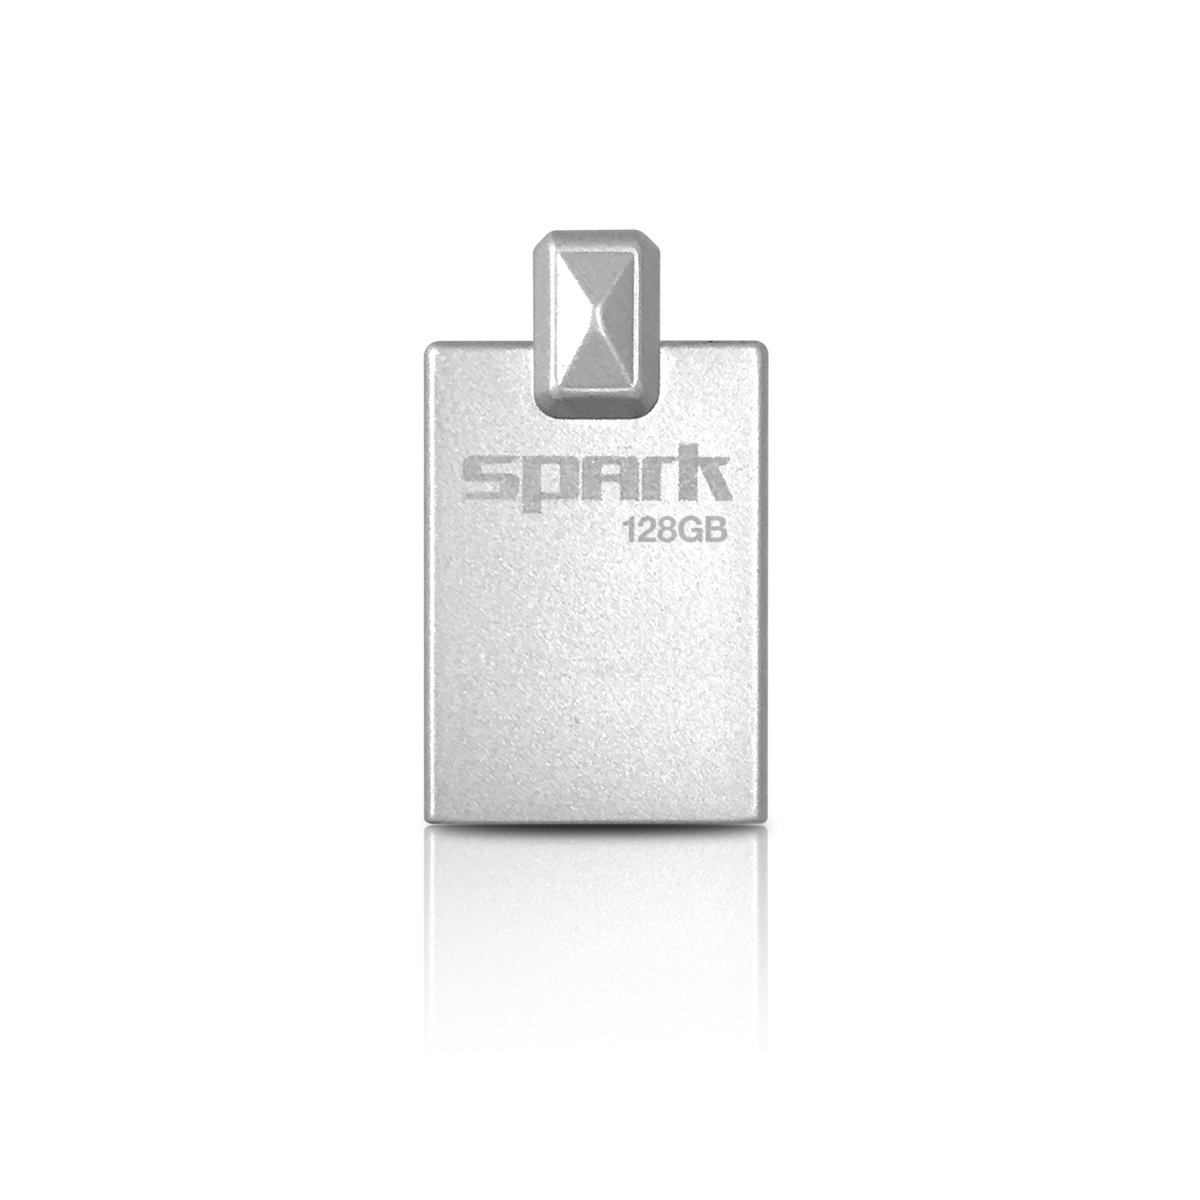 128B Patriot Spark USB 3.1 110/20MBs